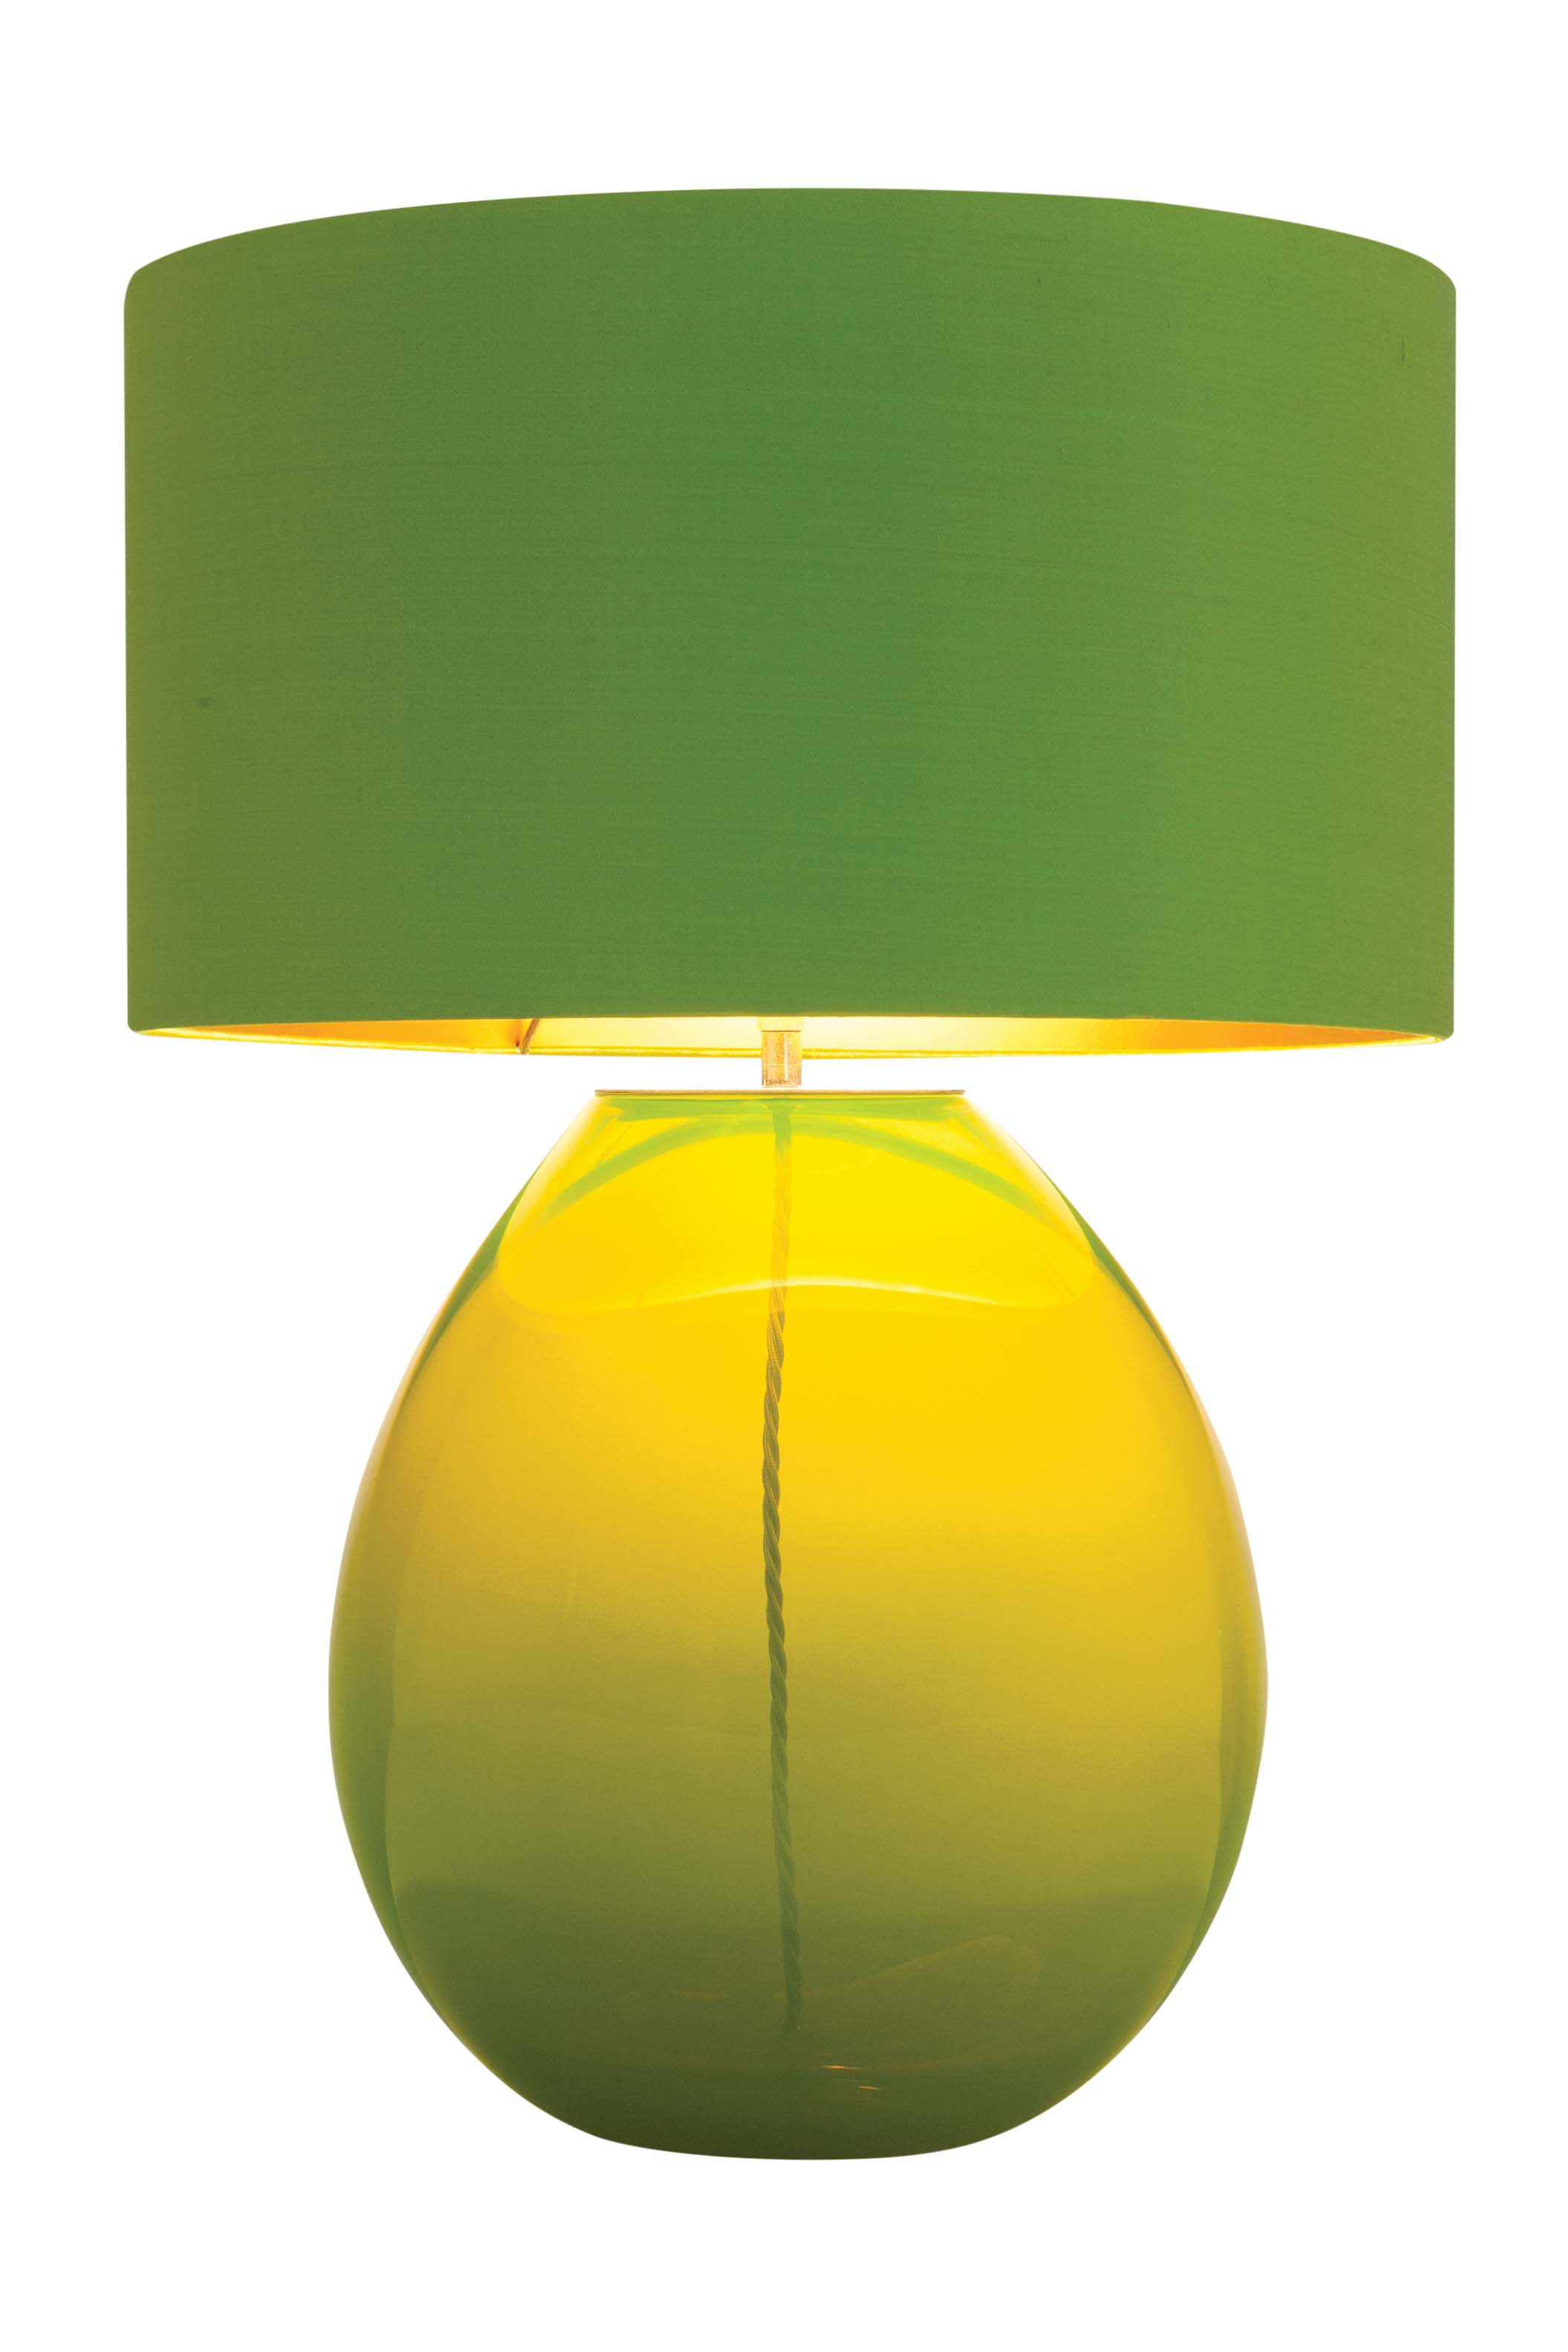 Design direction access great design for Bella figura lamps